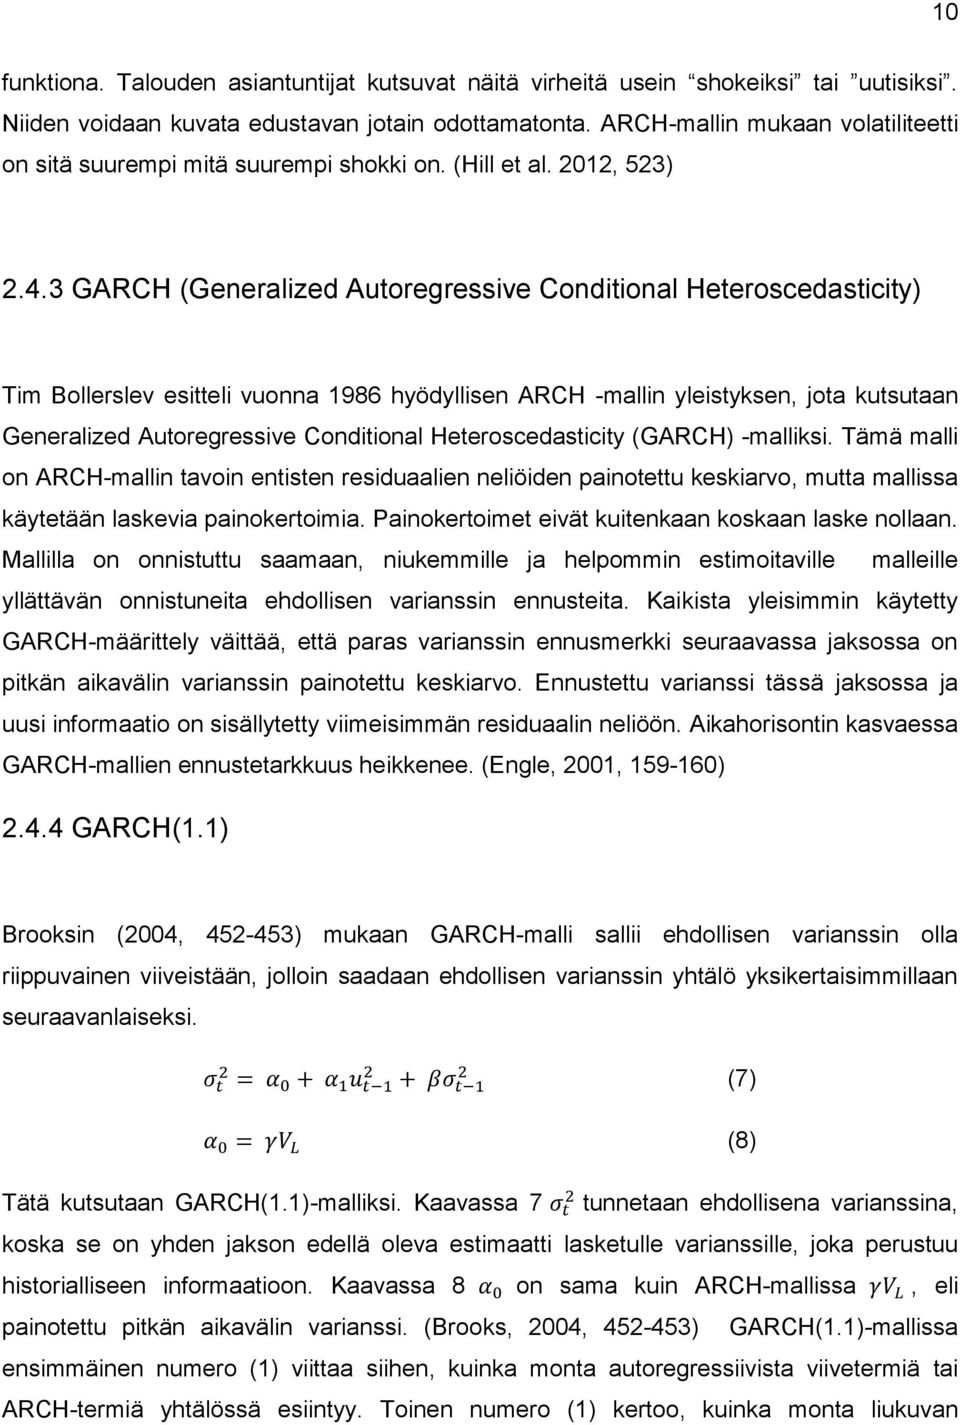 3 GARCH (Generalized Autoregressive Conditional Heteroscedasticity) Tim Bollerslev esitteli vuonna 1986 hyödyllisen ARCH -mallin yleistyksen, jota kutsutaan Generalized Autoregressive Conditional